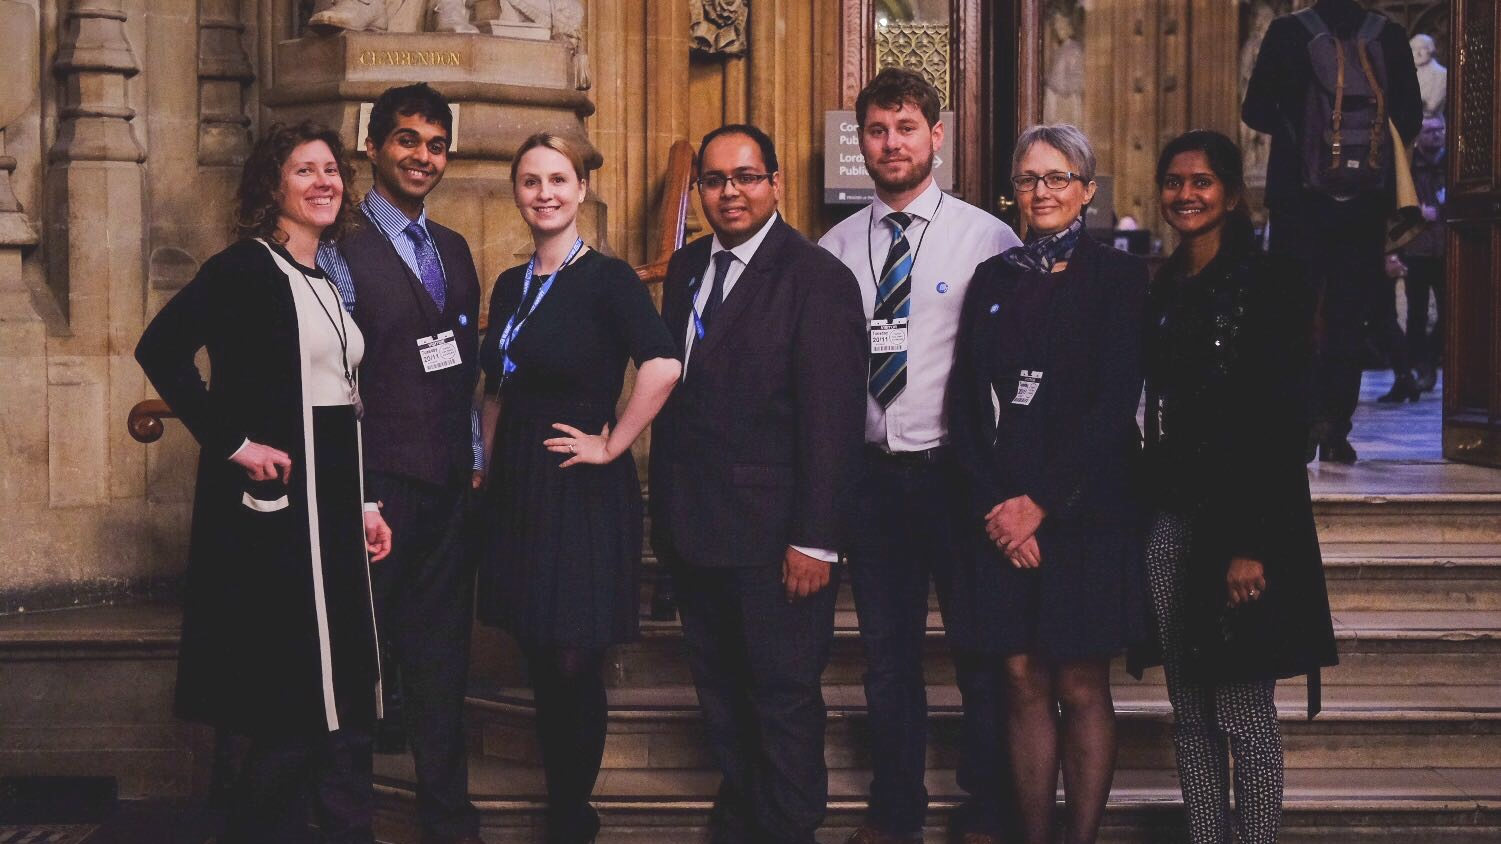 Meet the team - DAUK is a doctor-led organisation run by a committee of volunteers who receive no renumeration for their time including GPs, junior doctors and consultants.Find out more about who we are